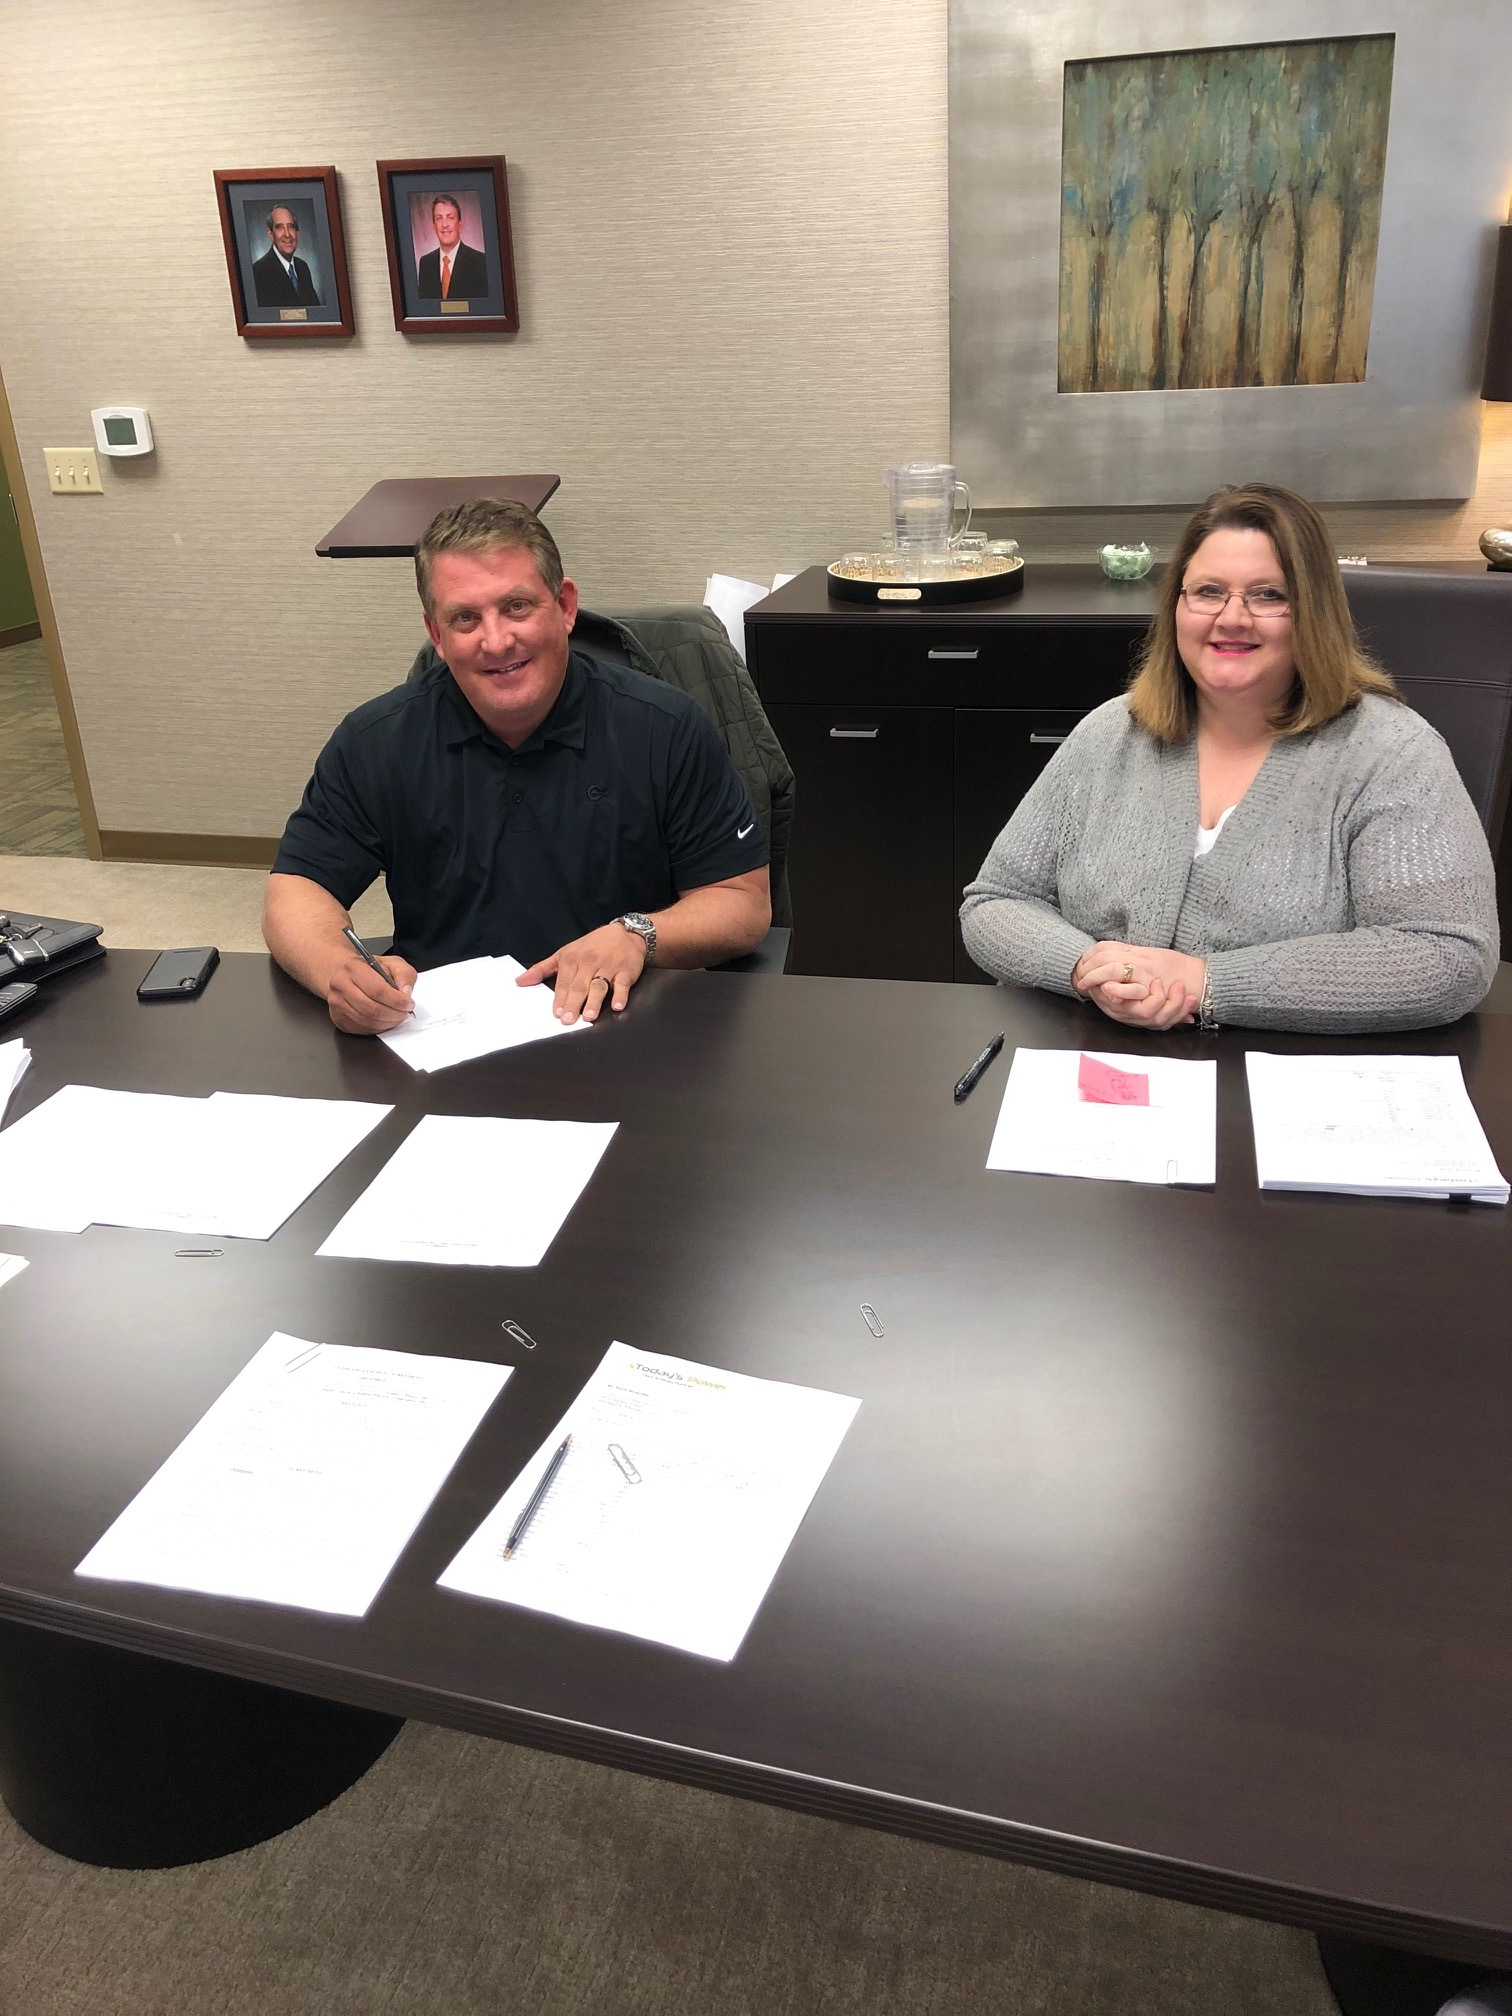 Kevin Brownlee, CEO of SCAEC, and Haley Tibbs, CFO, signed an agreement to construct a 1-MW Solar Array with Today's Power, Inc.